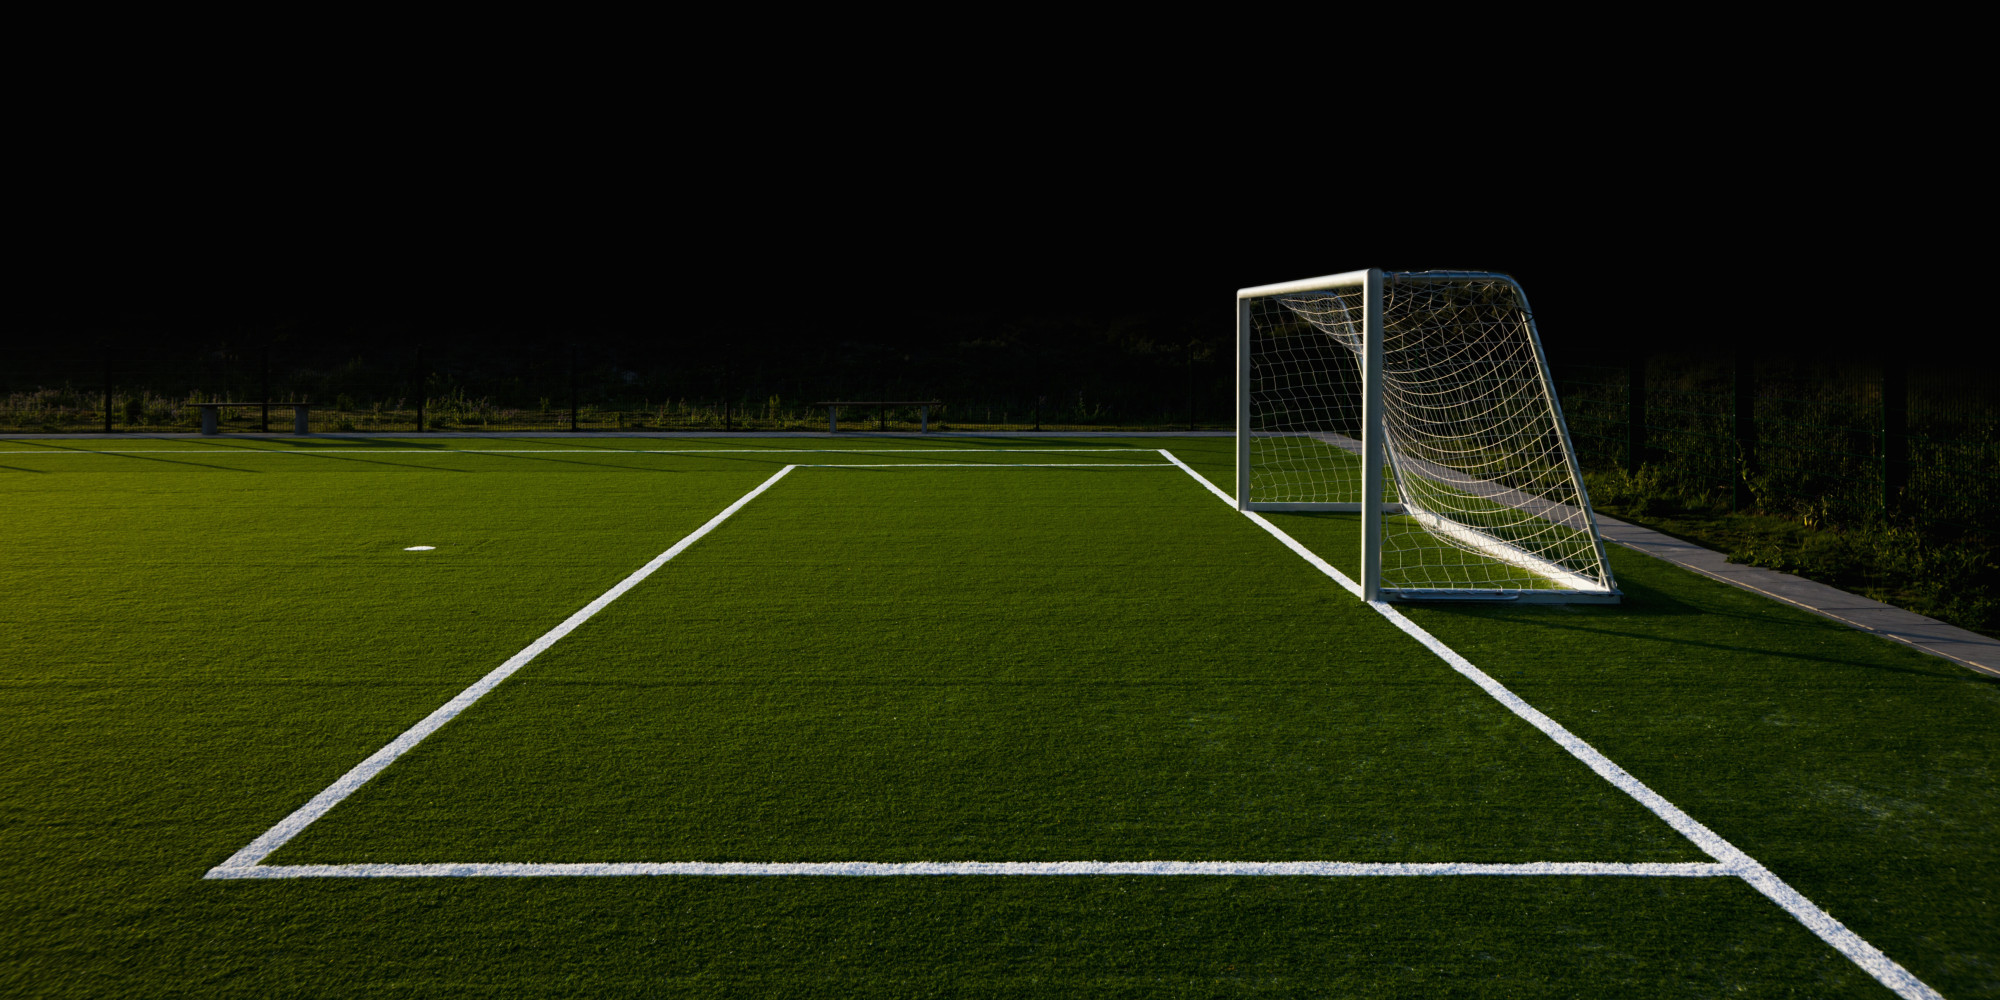 Soccer Field Wallpaper - WallpaperSafari